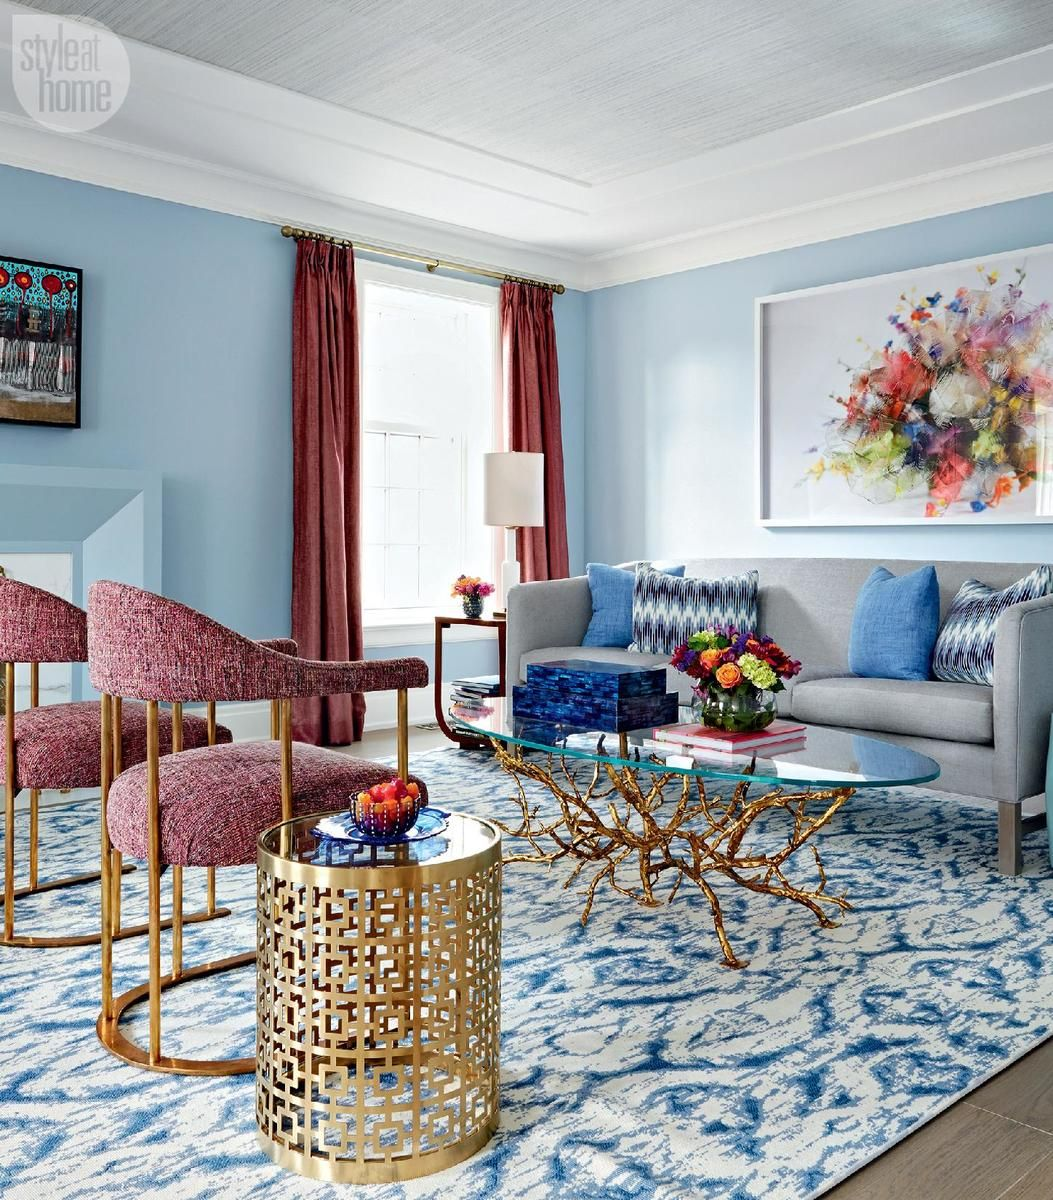 11 bold interiors not for the faint of heart images